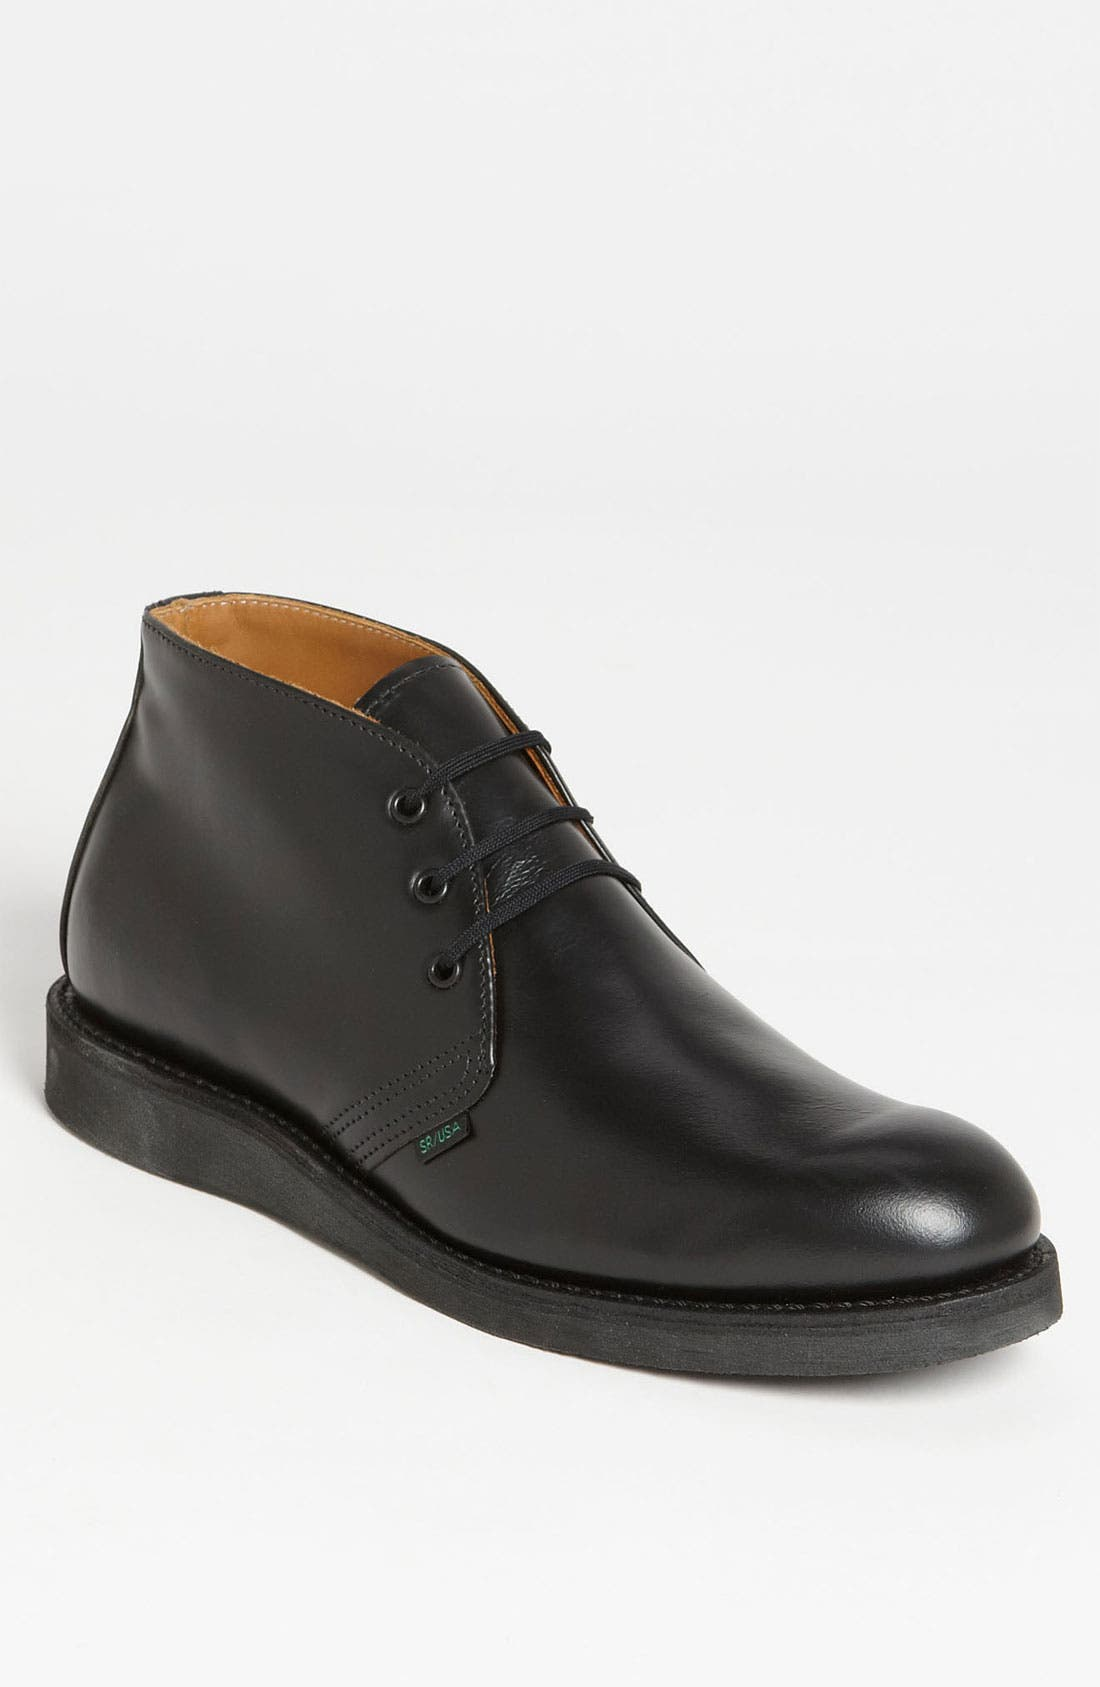 'Postman' Chukka Boot,                         Main,                         color, BLACK CHAPARRAL- 9196